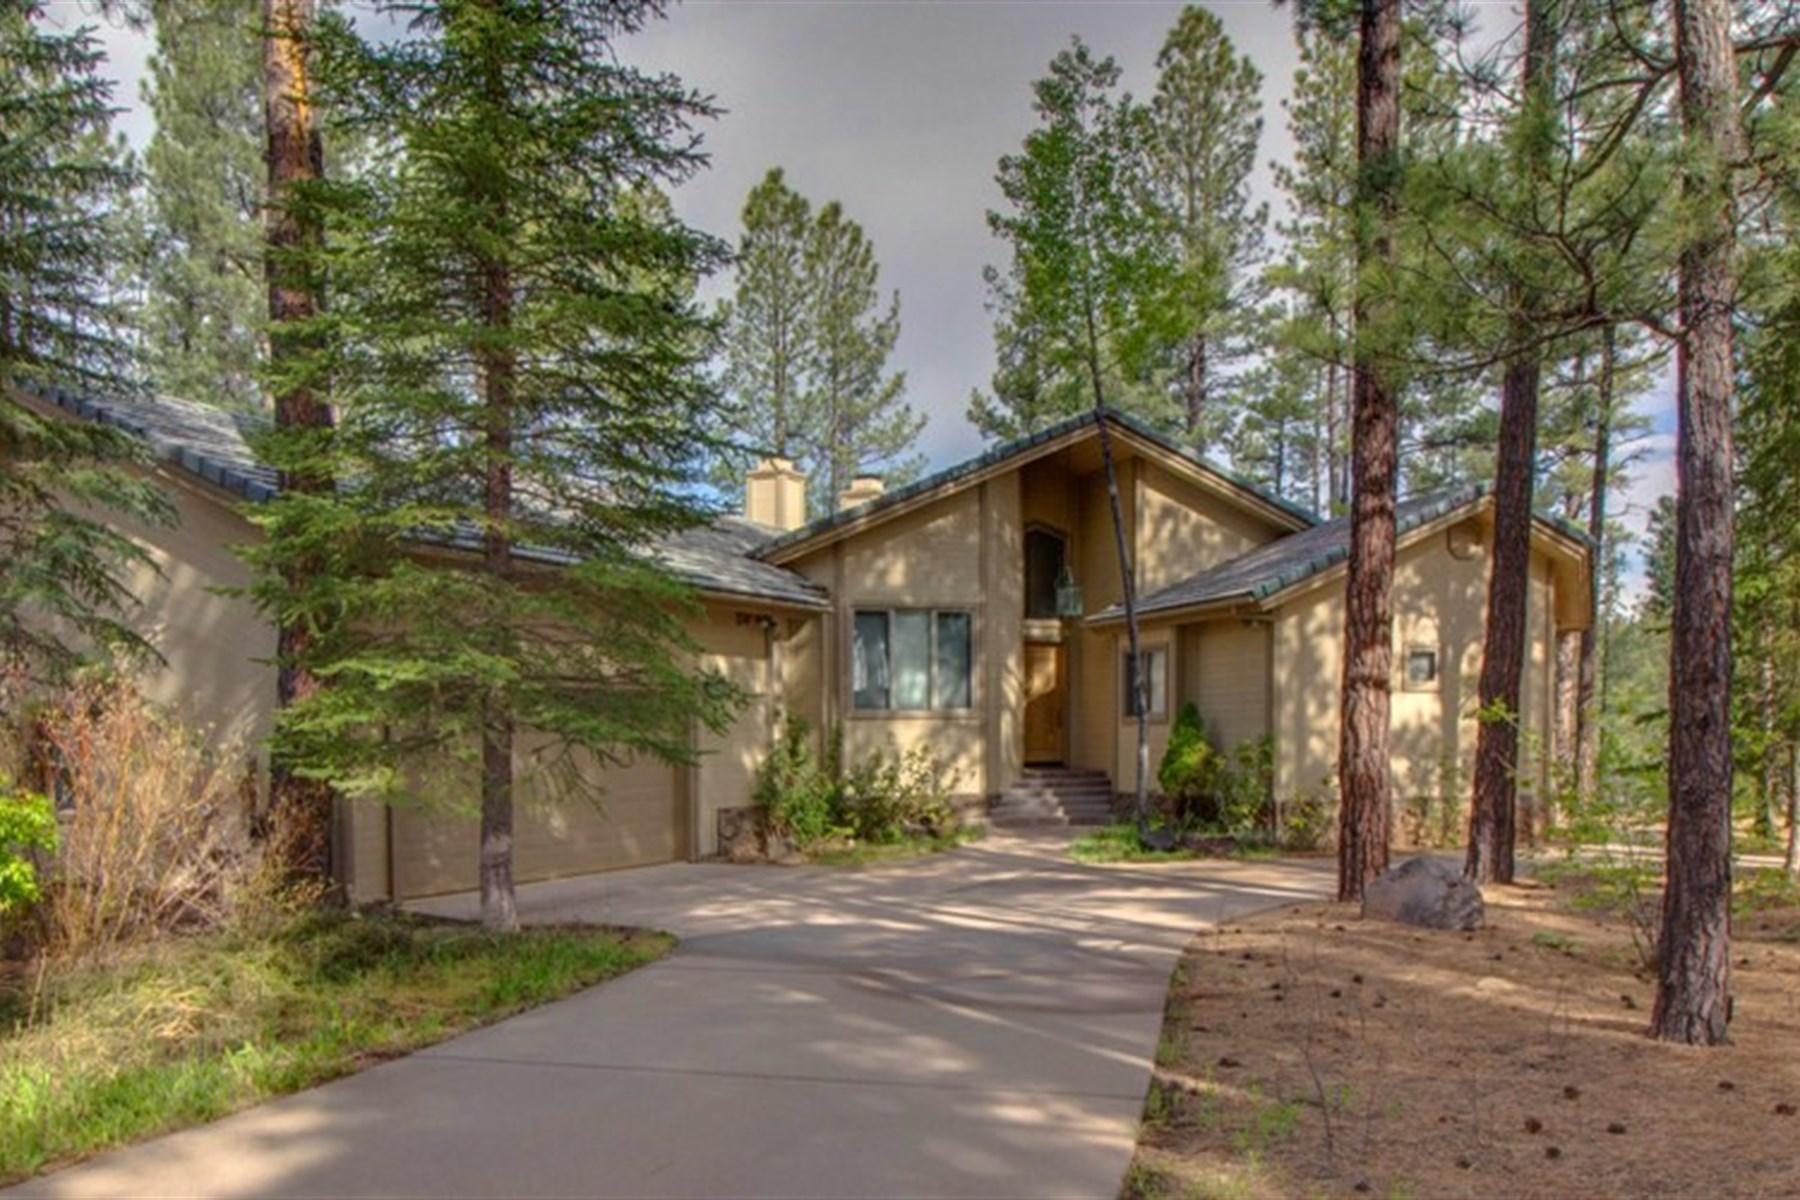 Casa para uma família para Venda às Backing National Forest with stunning San Francisco Peak 2034 William Palmer Flagstaff, Arizona 86005 Estados Unidos